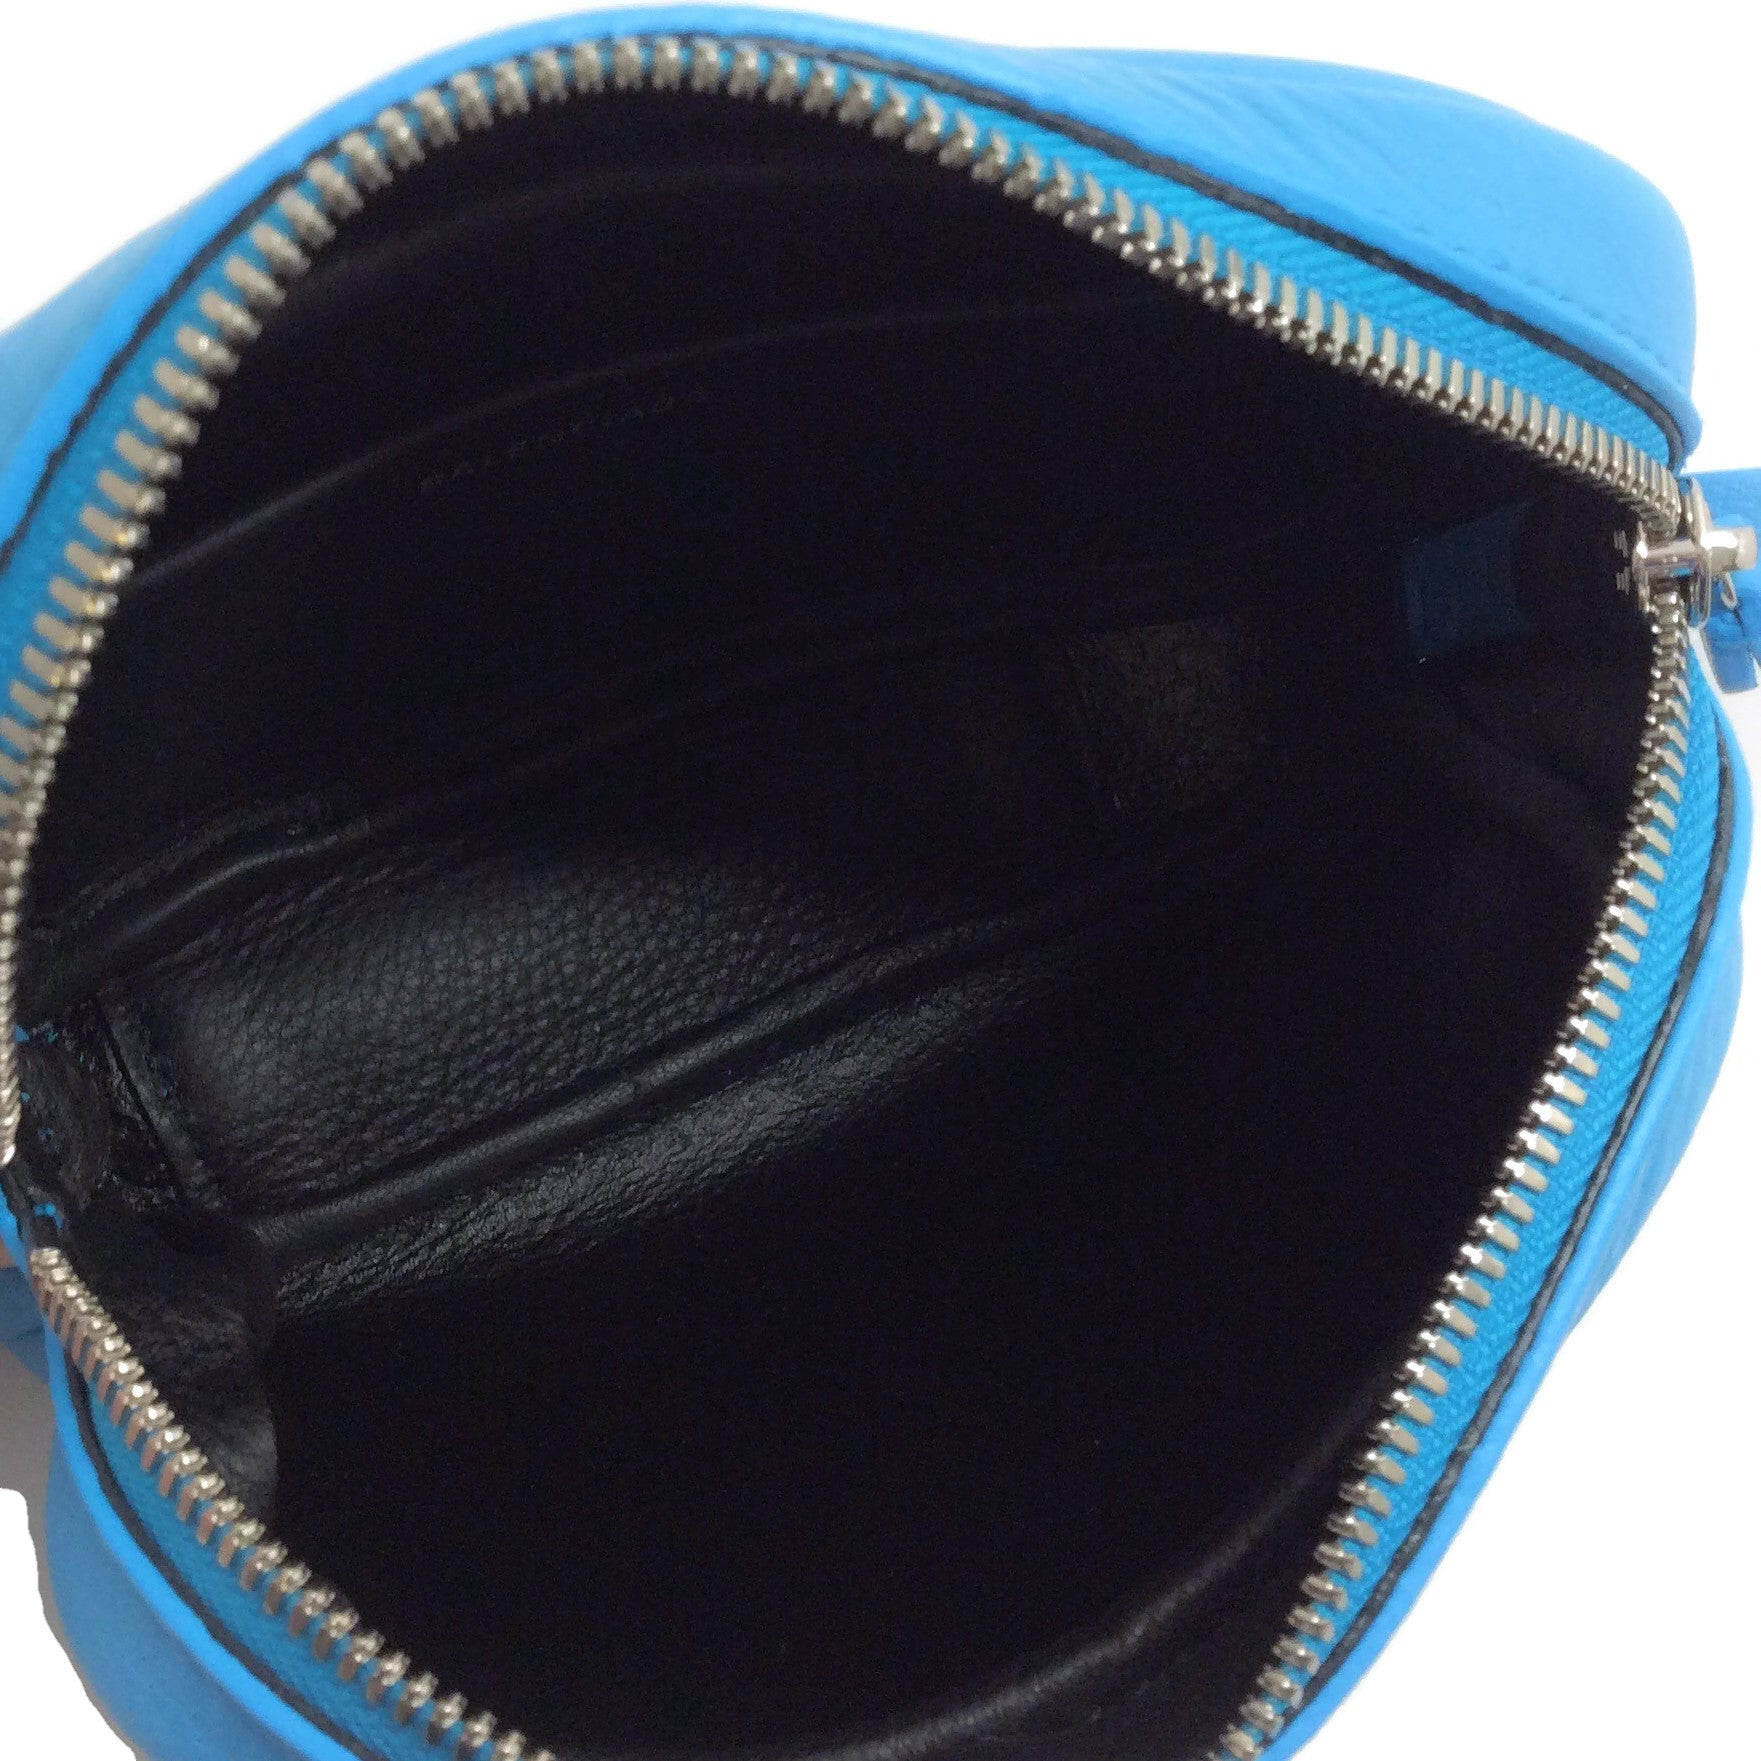 Balenciaga Turquoise Leather Kitten Everyday Camera Bag XS